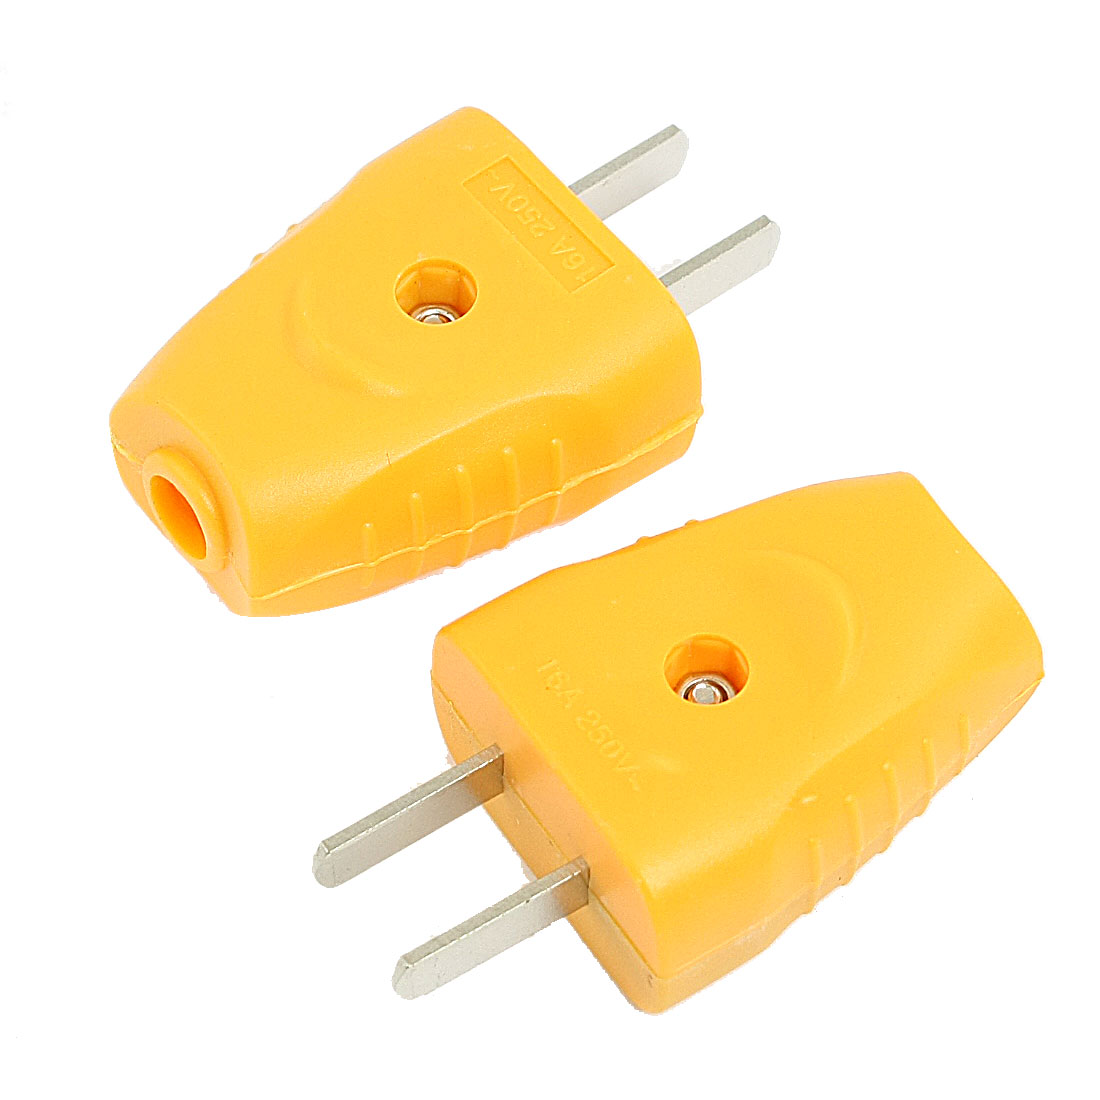 US Plug Yellow Plastic Housing Power Adapter Connector AC 250V 16A 2 Pcs